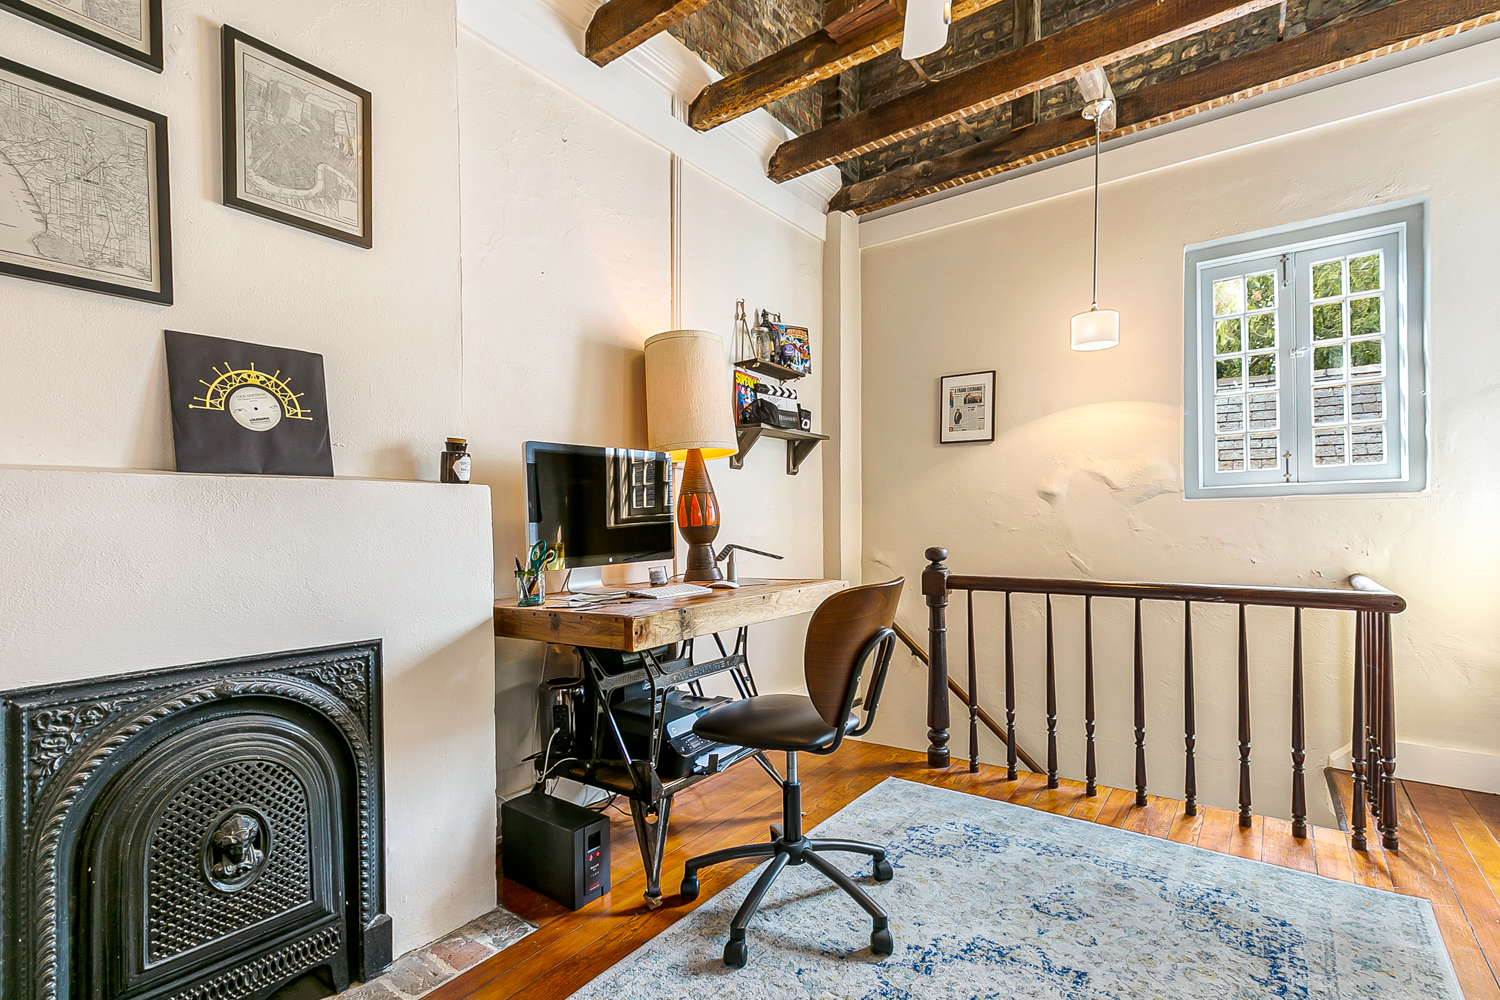 French Quarter, Condo, 1 beds, 2.0 baths, $2400 per month New Orleans Rental - devie image_8